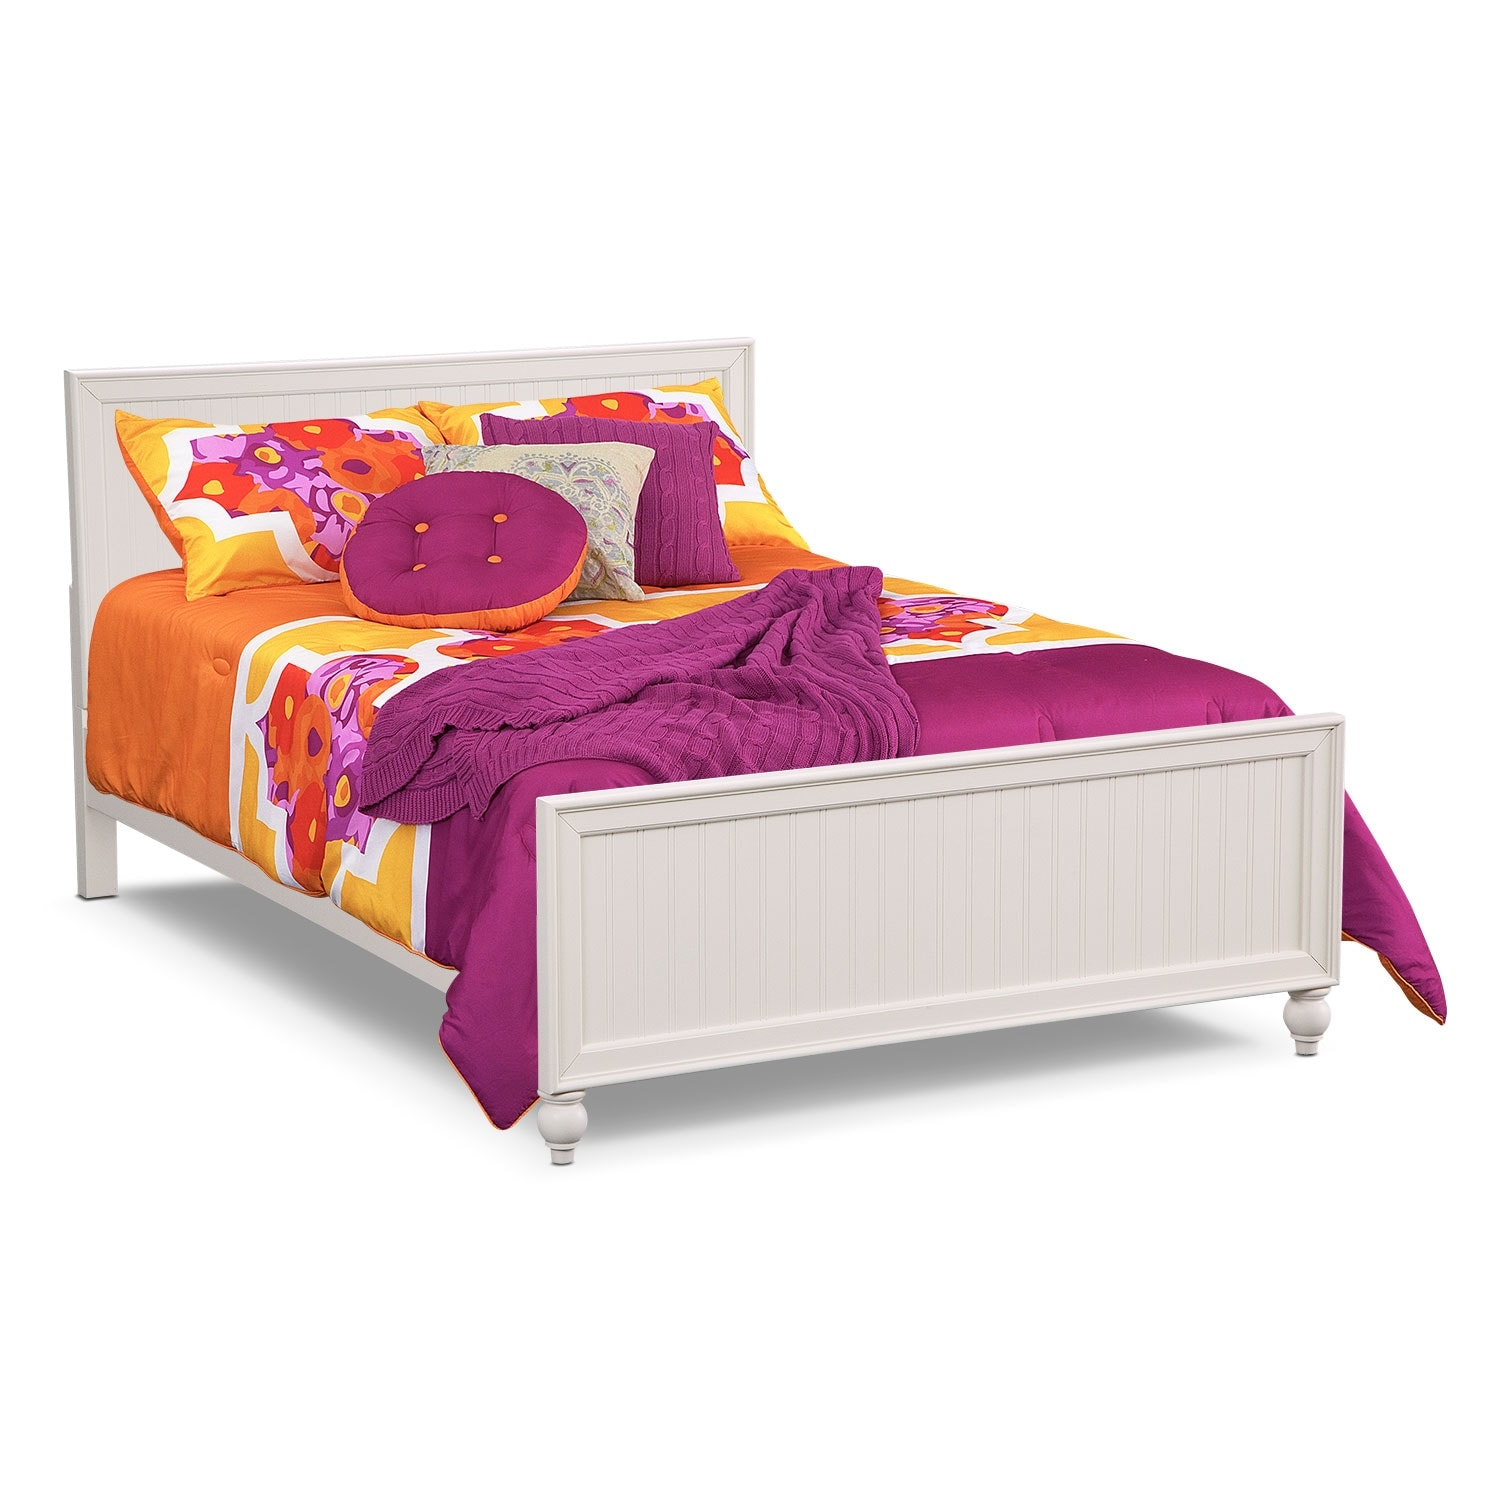 Bedroom Furniture - Colorworks Youth Full Bed - White